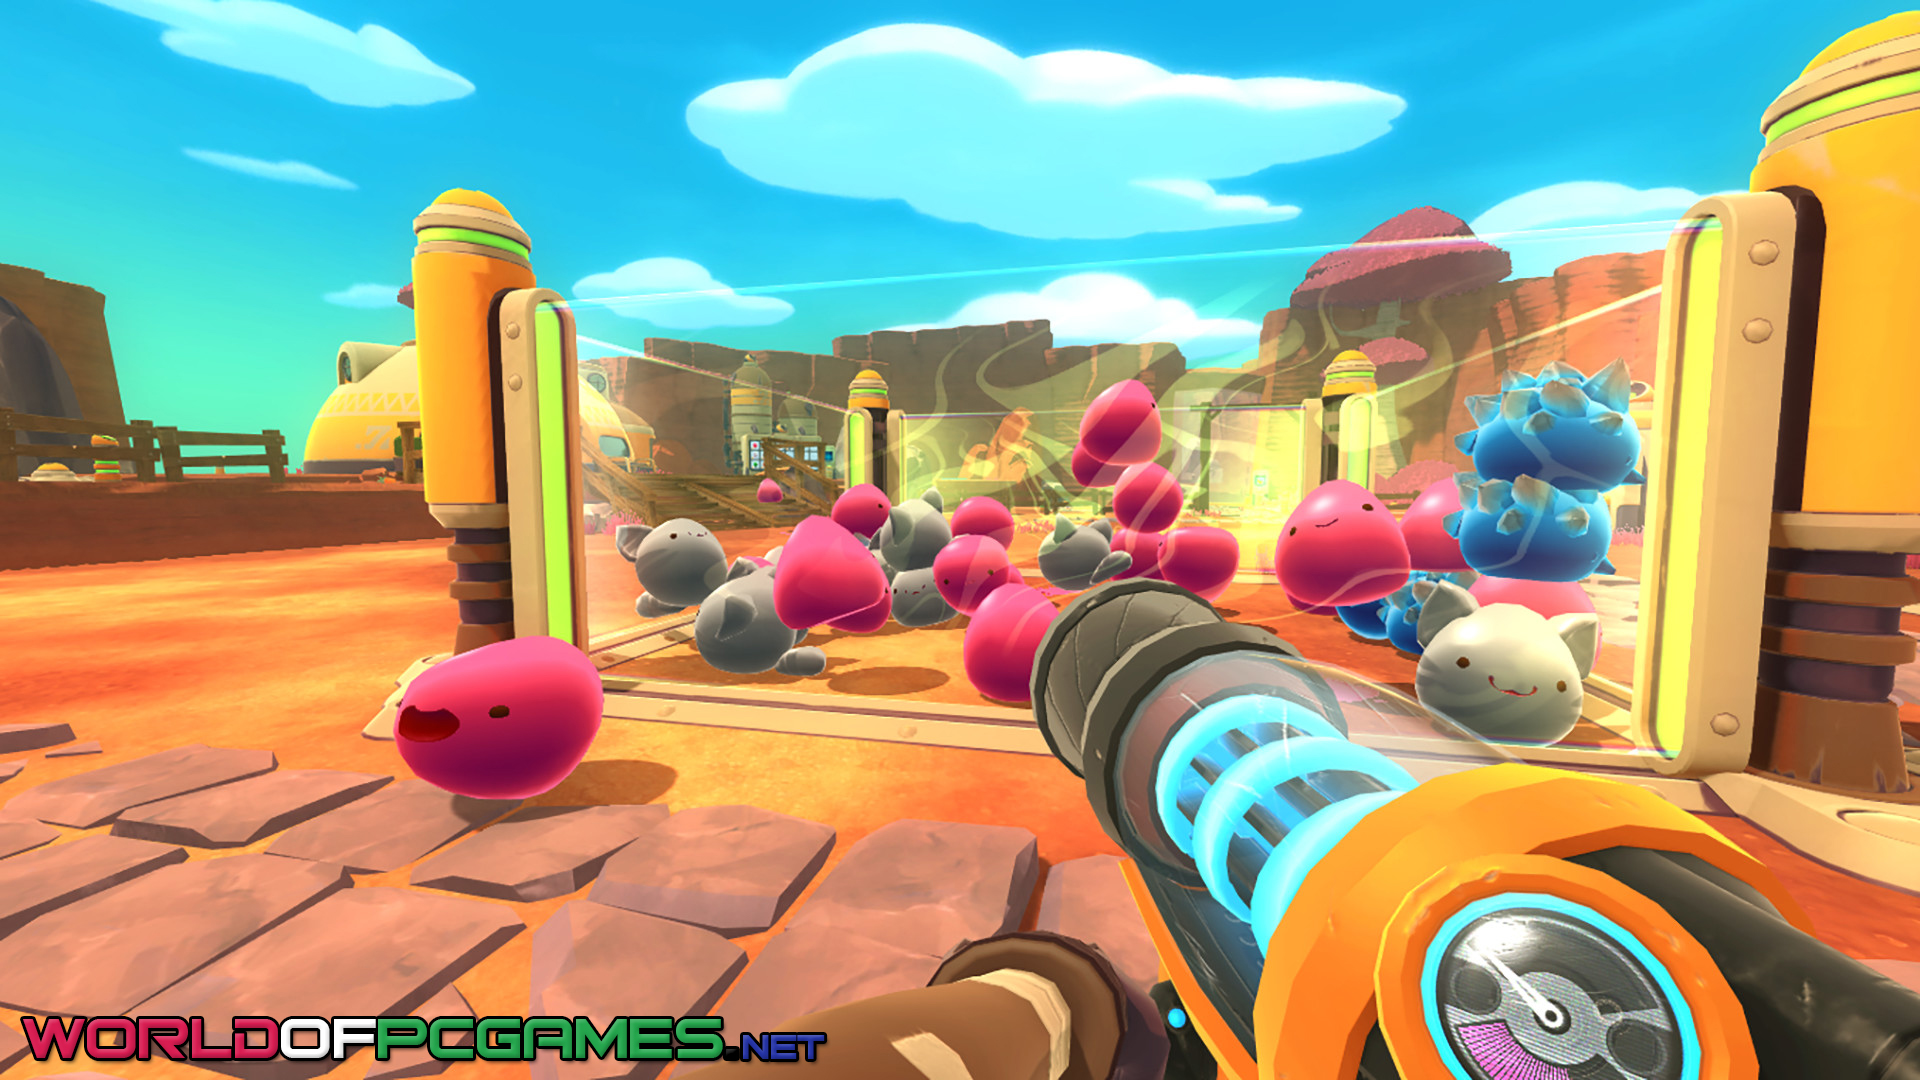 Slime Rancher Free Download By Worldofpcgames.net